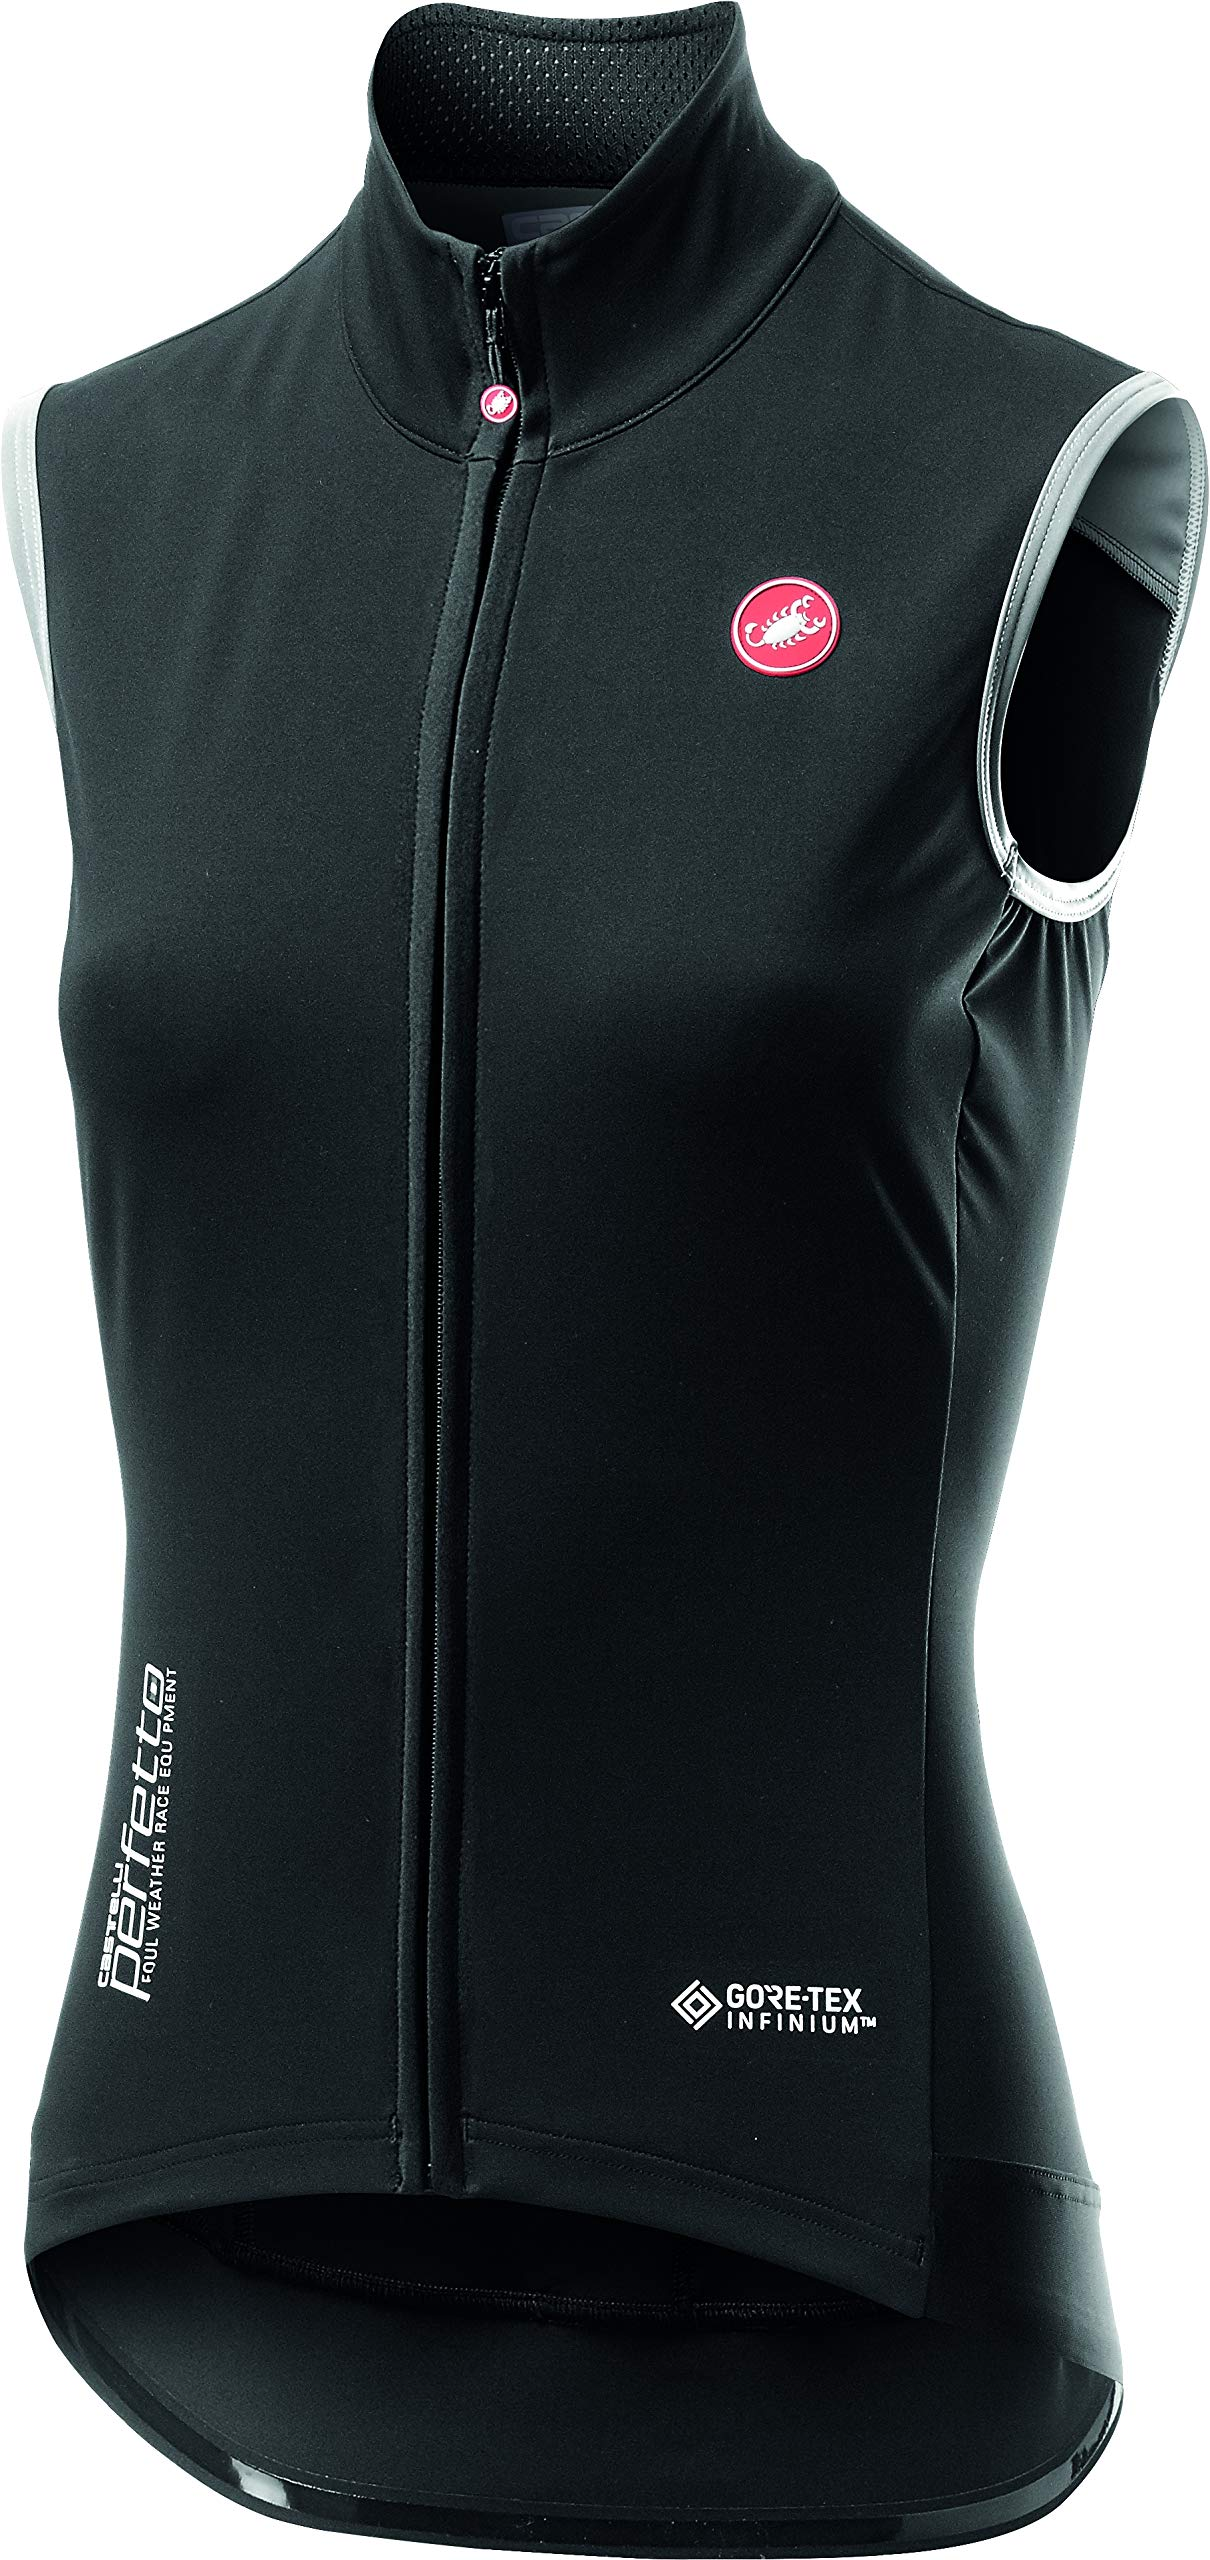 Castelli Perfetto ROS Vest - Women's Light Black, S by Castelli